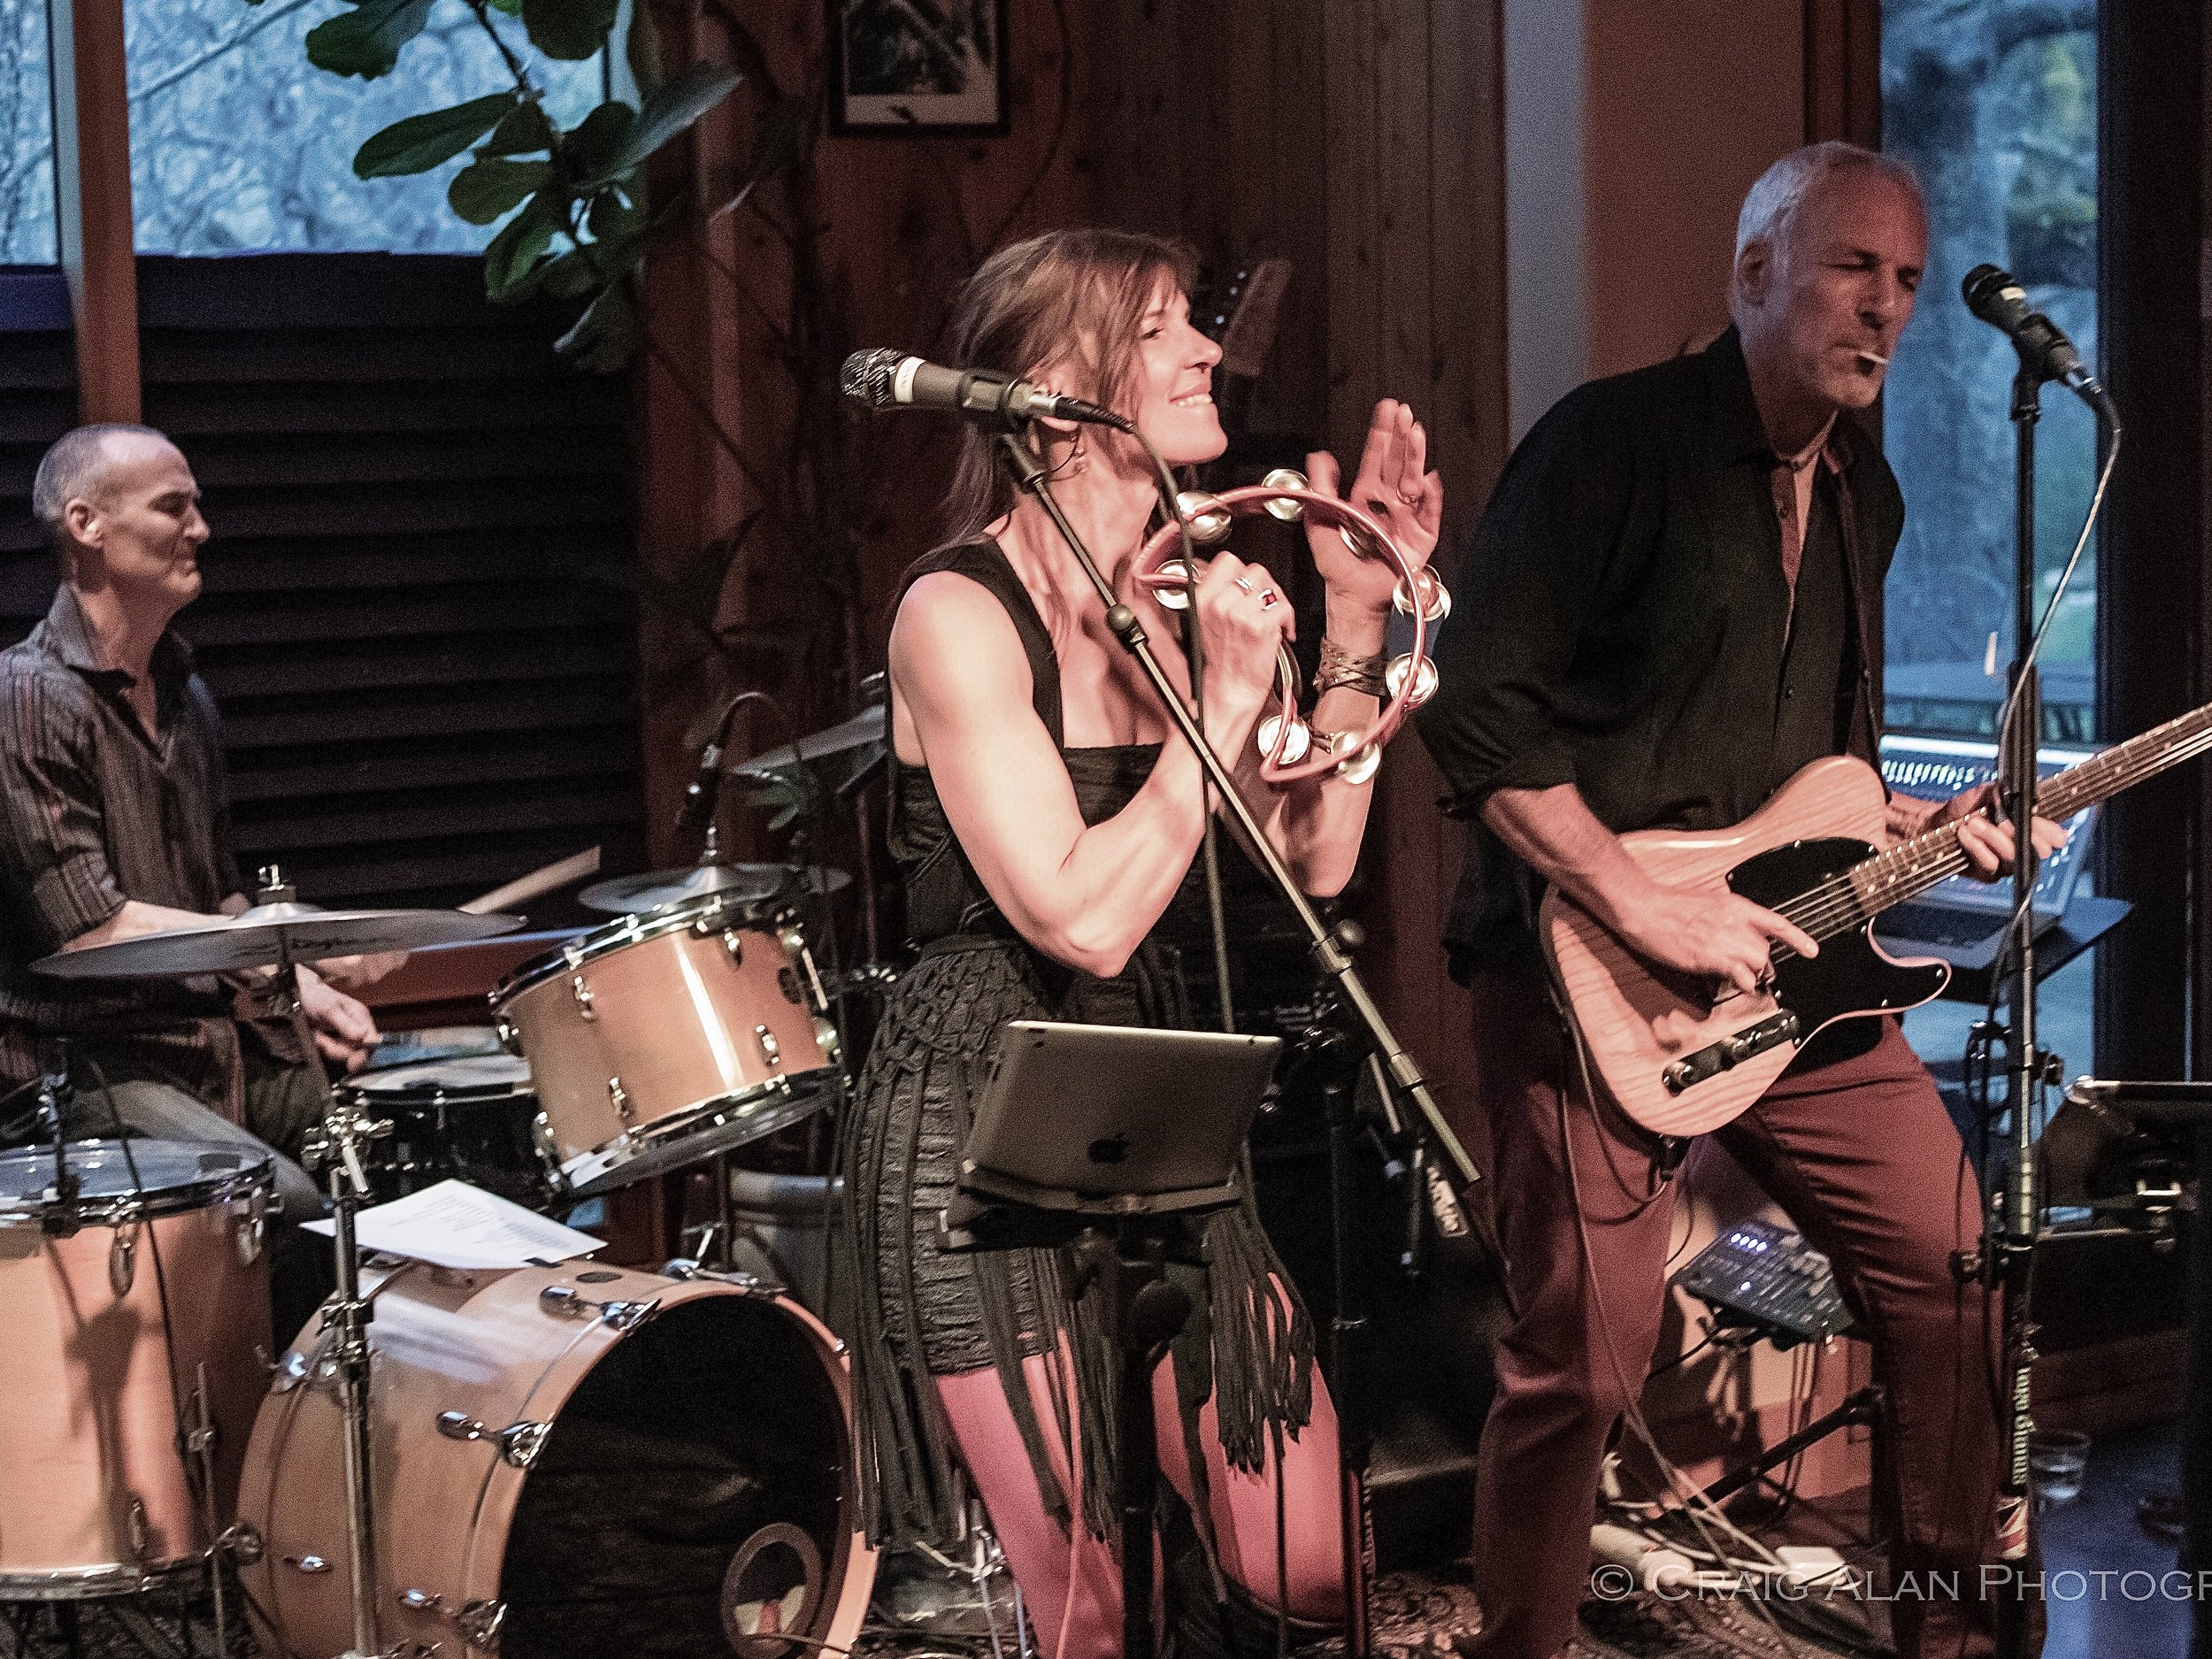 Inger Nova Jorgensen, Jeff Pevar & Matthew Kriemelman with LOVEBITE band at The Stone House. Photo by Craig Alan